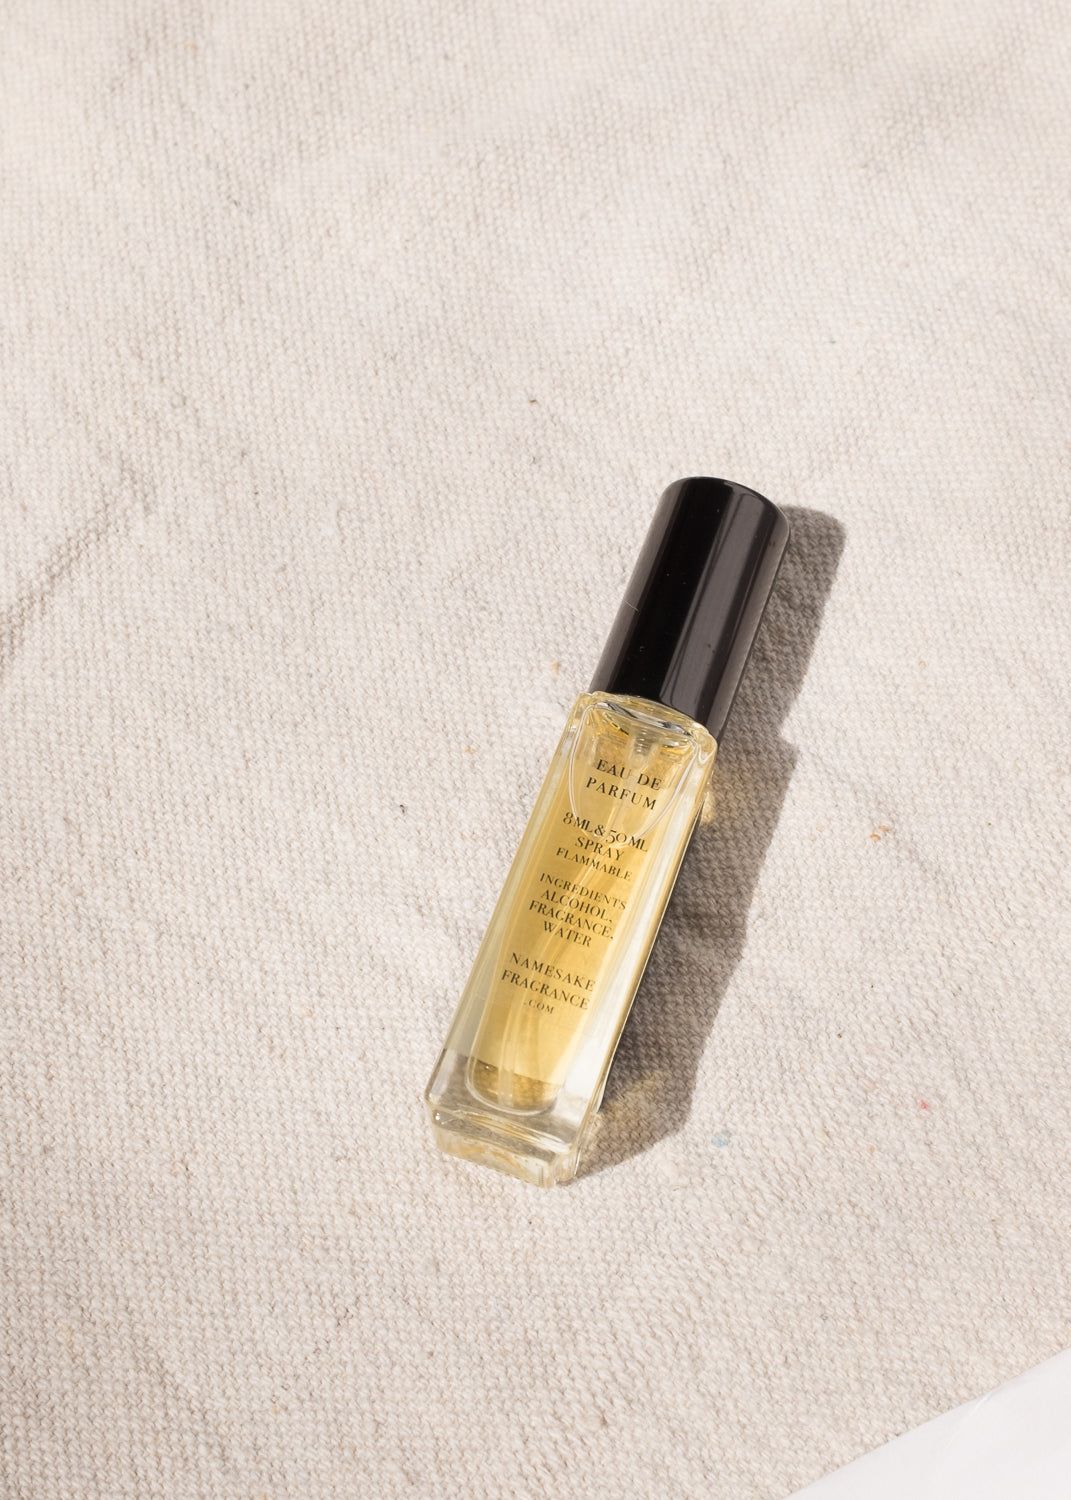 Overhead view of single rectangular perfume bottle; backside with text listing ingredients, amount, and brand.